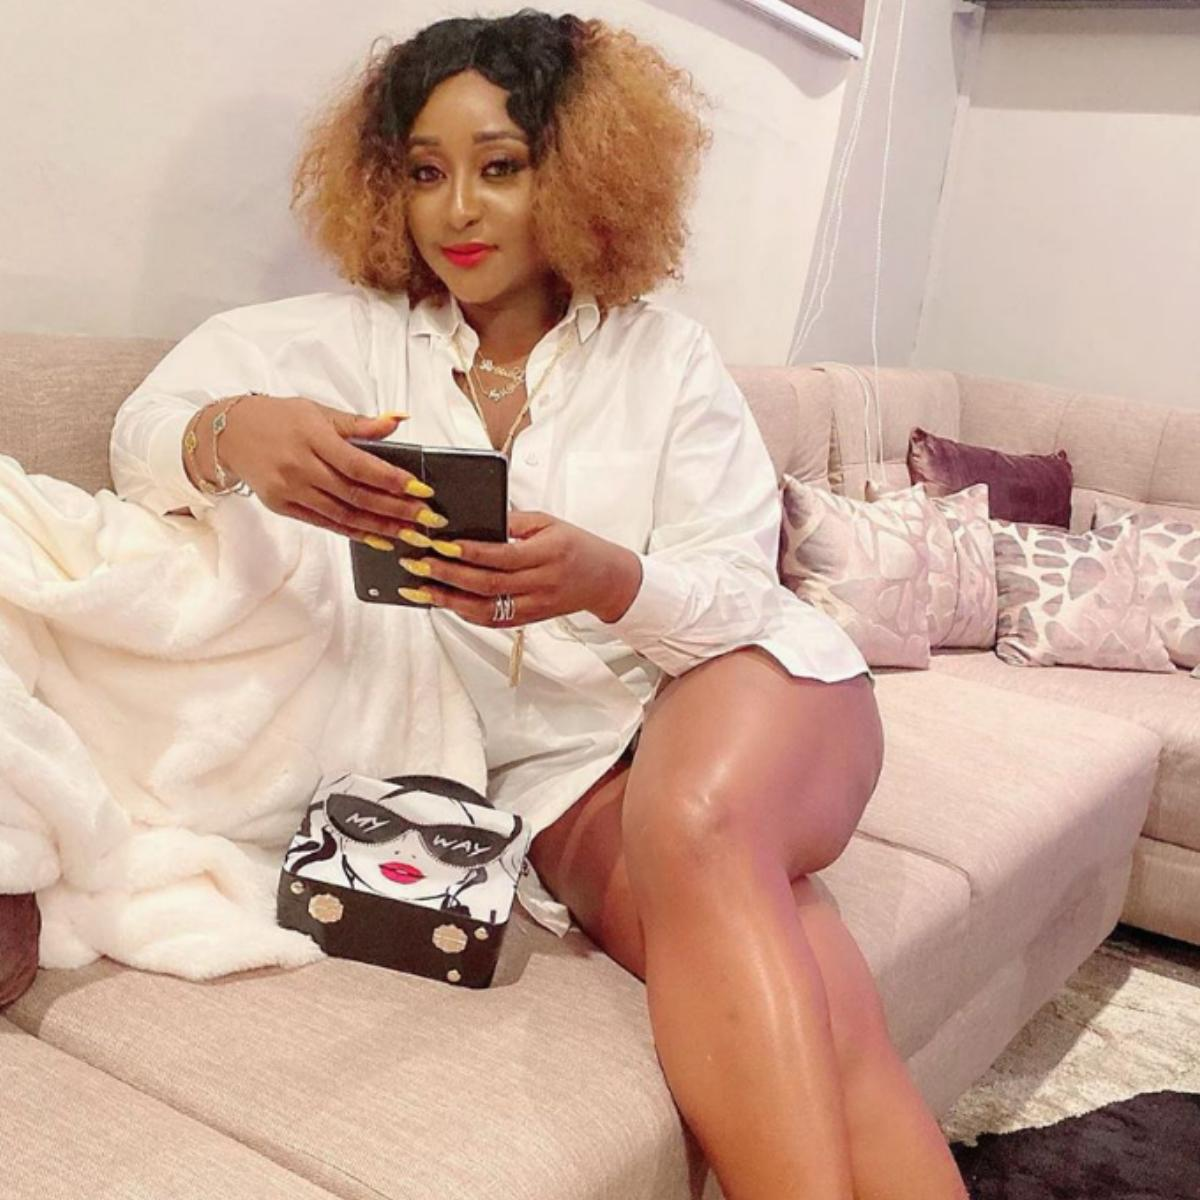 Just Look At The Perfection And Beauty Of God's Work Ini Edo